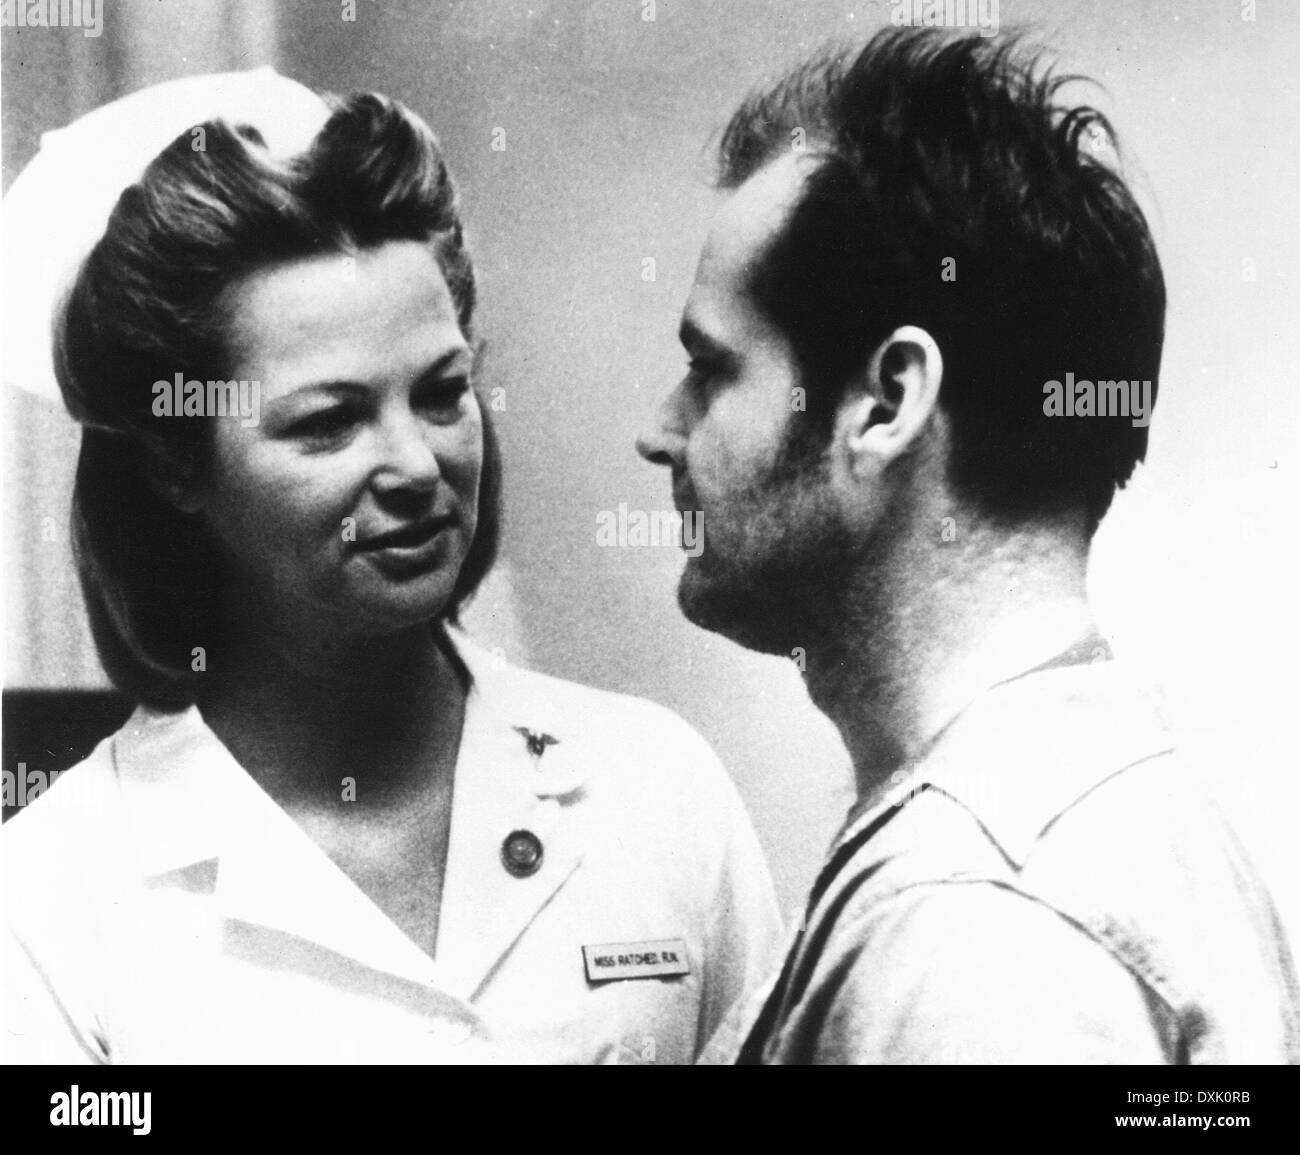 ONE FLEW OVER THE CUCKOO'S NEST Stock Photo